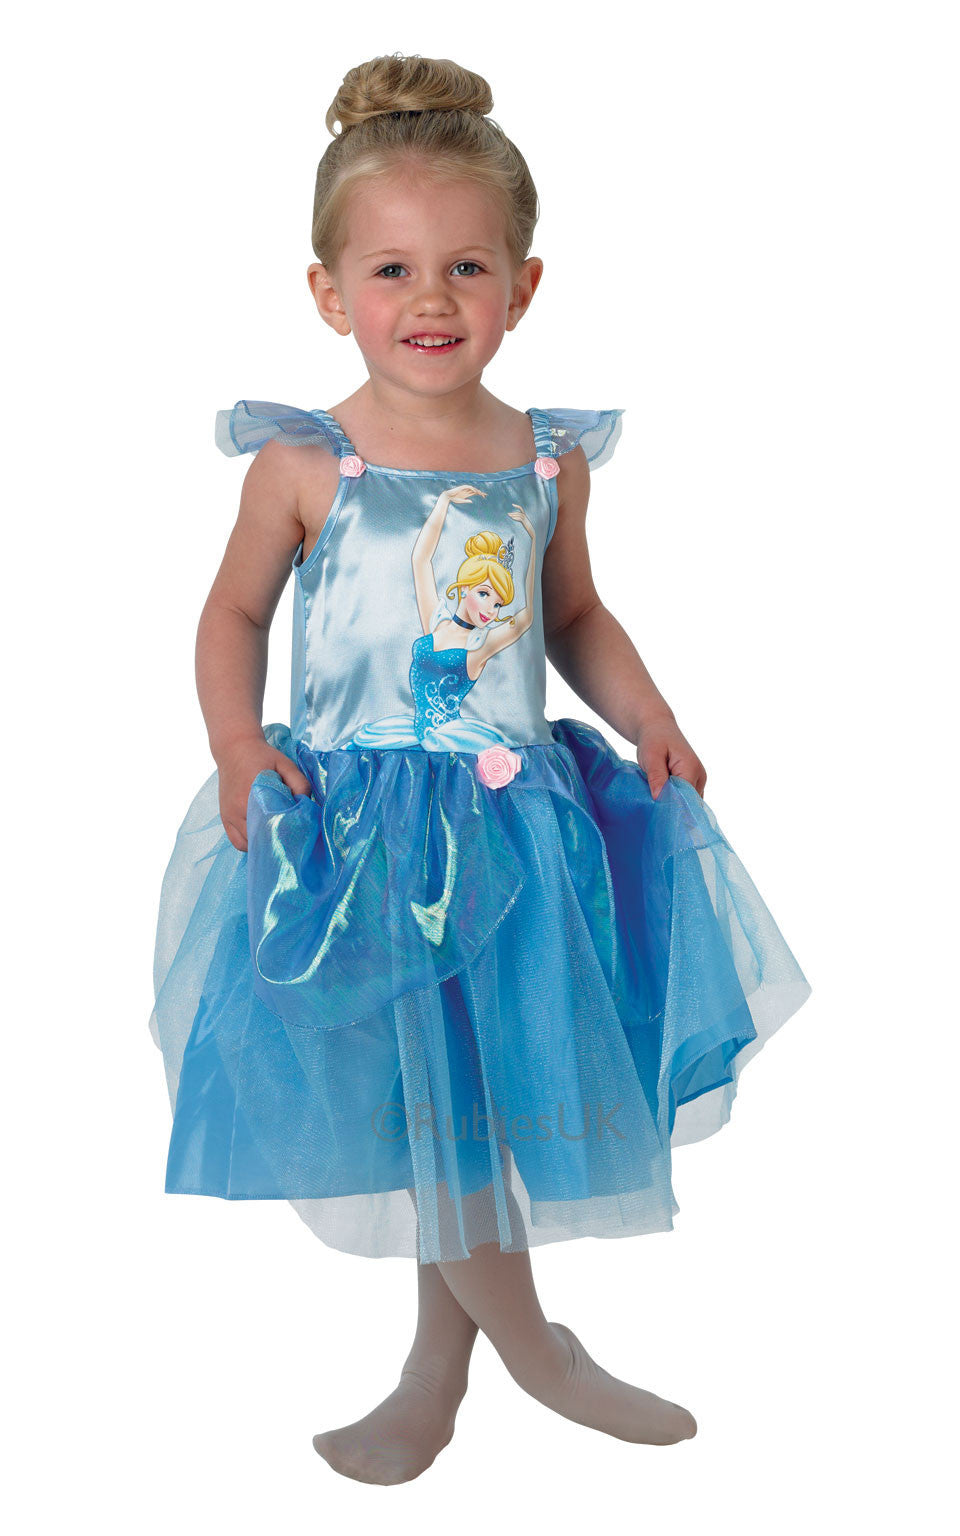 CINDERELLA BALLERINA DRESS - SIZE TODDLER